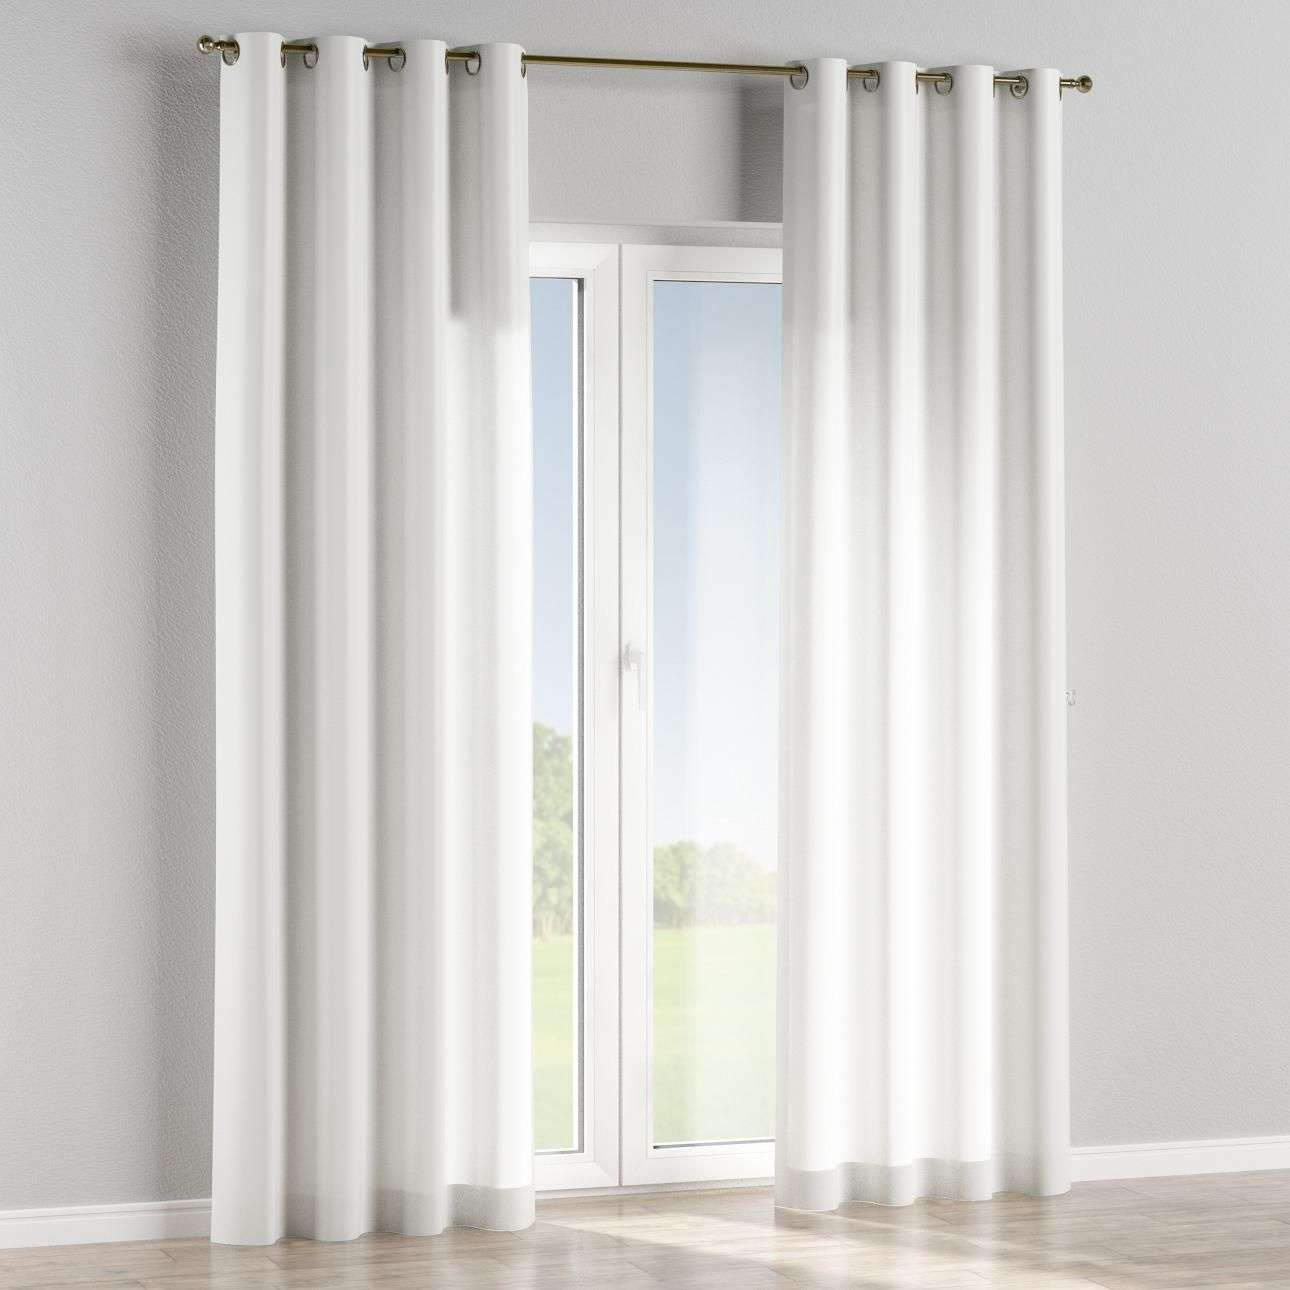 Eyelet curtains in collection Christmas, fabric: 629-16